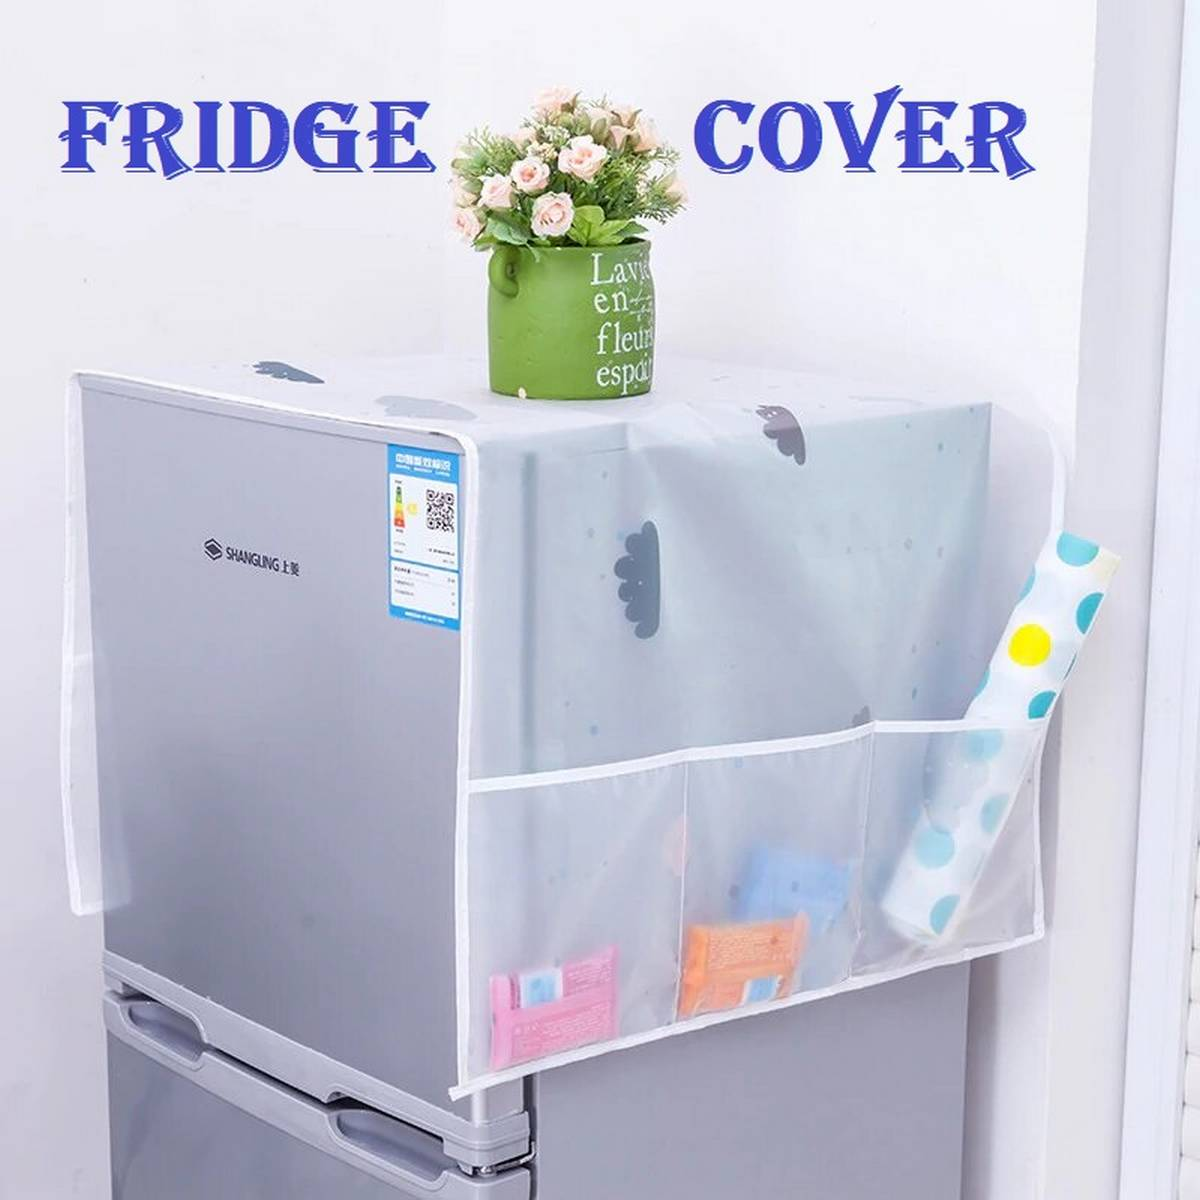 Printed Fridge Dust Cover Waterproof Refrigerator Dustproof Cover with 6 Pocket Household Freezer Top Hanging Bag Fridge Storage Bag Appliance Protector Organizer Washing Machine Top Cover